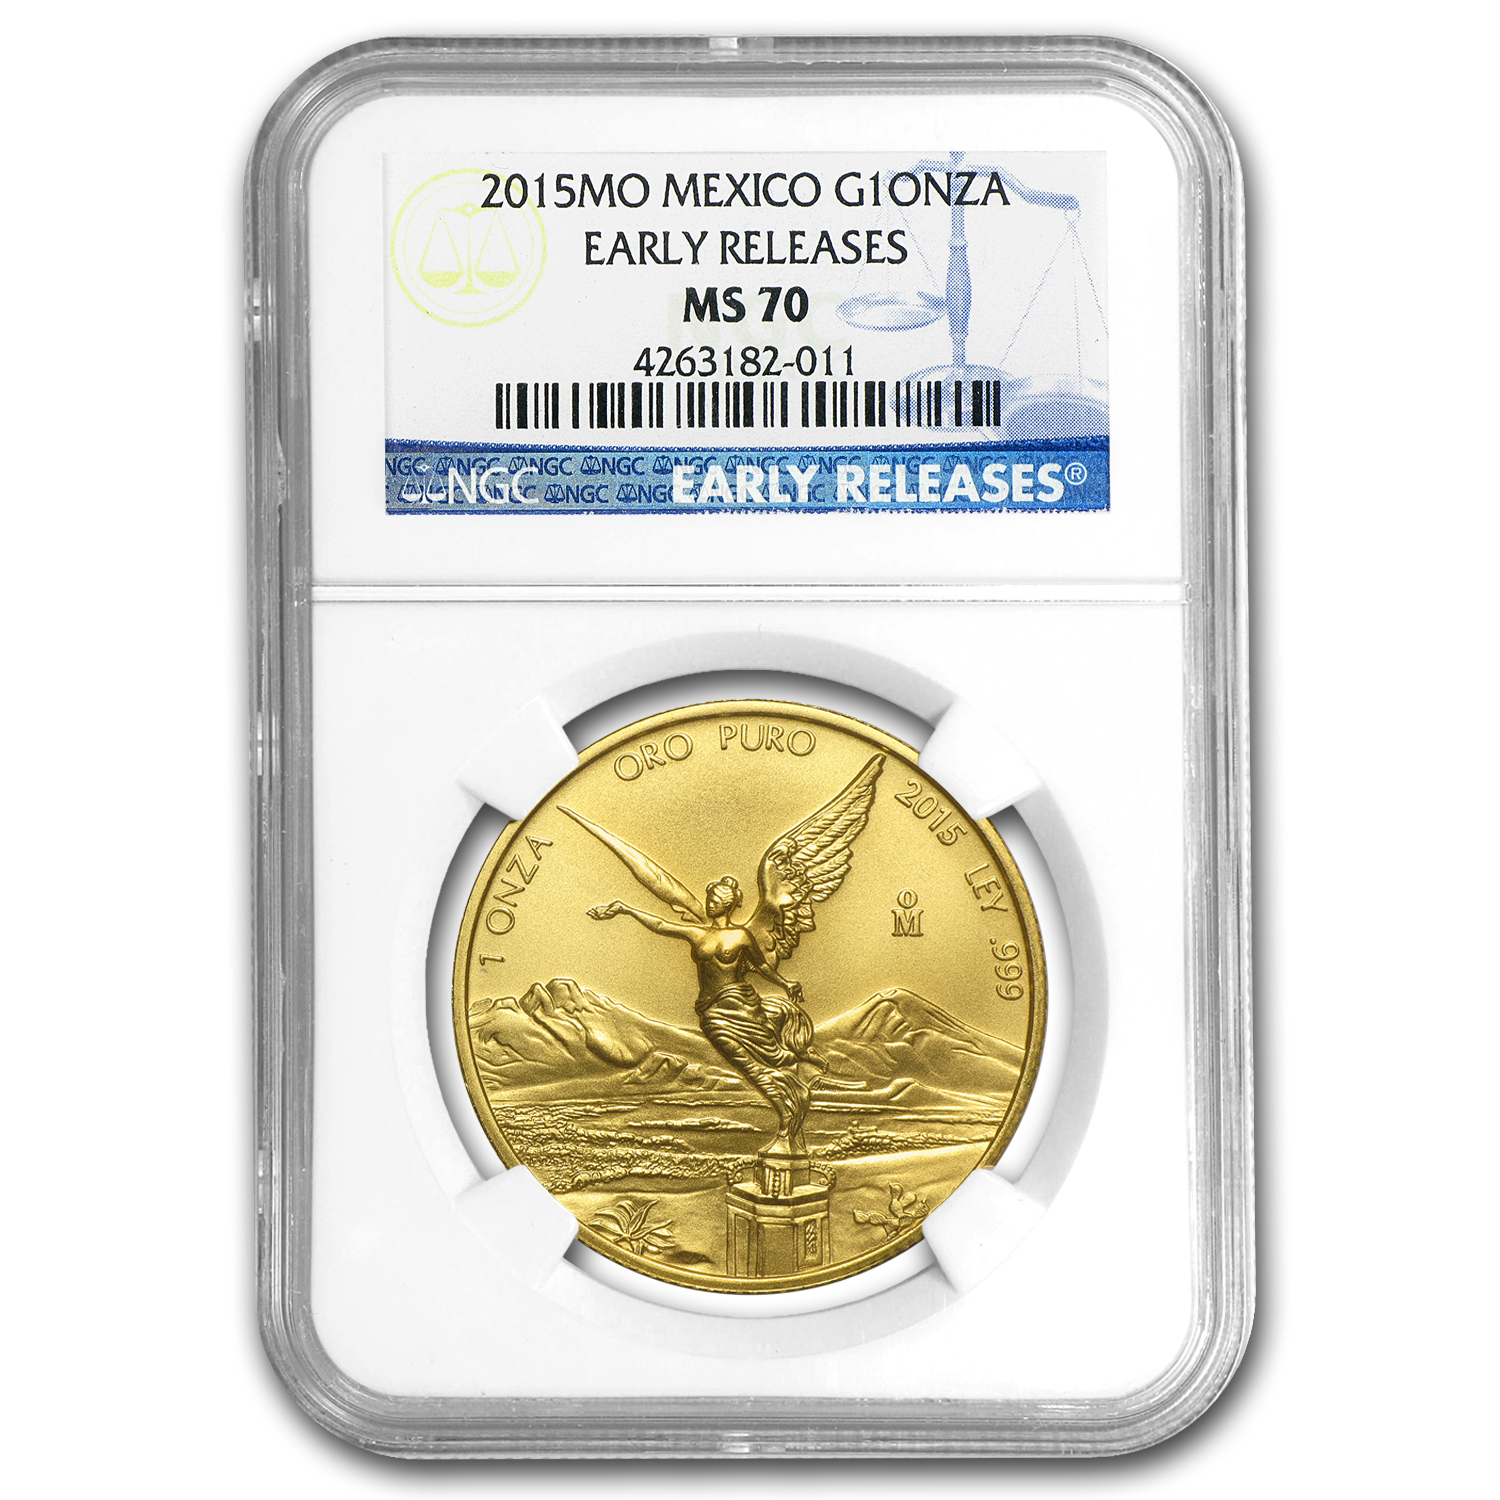 2015 Mexico 1 oz Gold Libertad MS-70 NGC (Early Release)